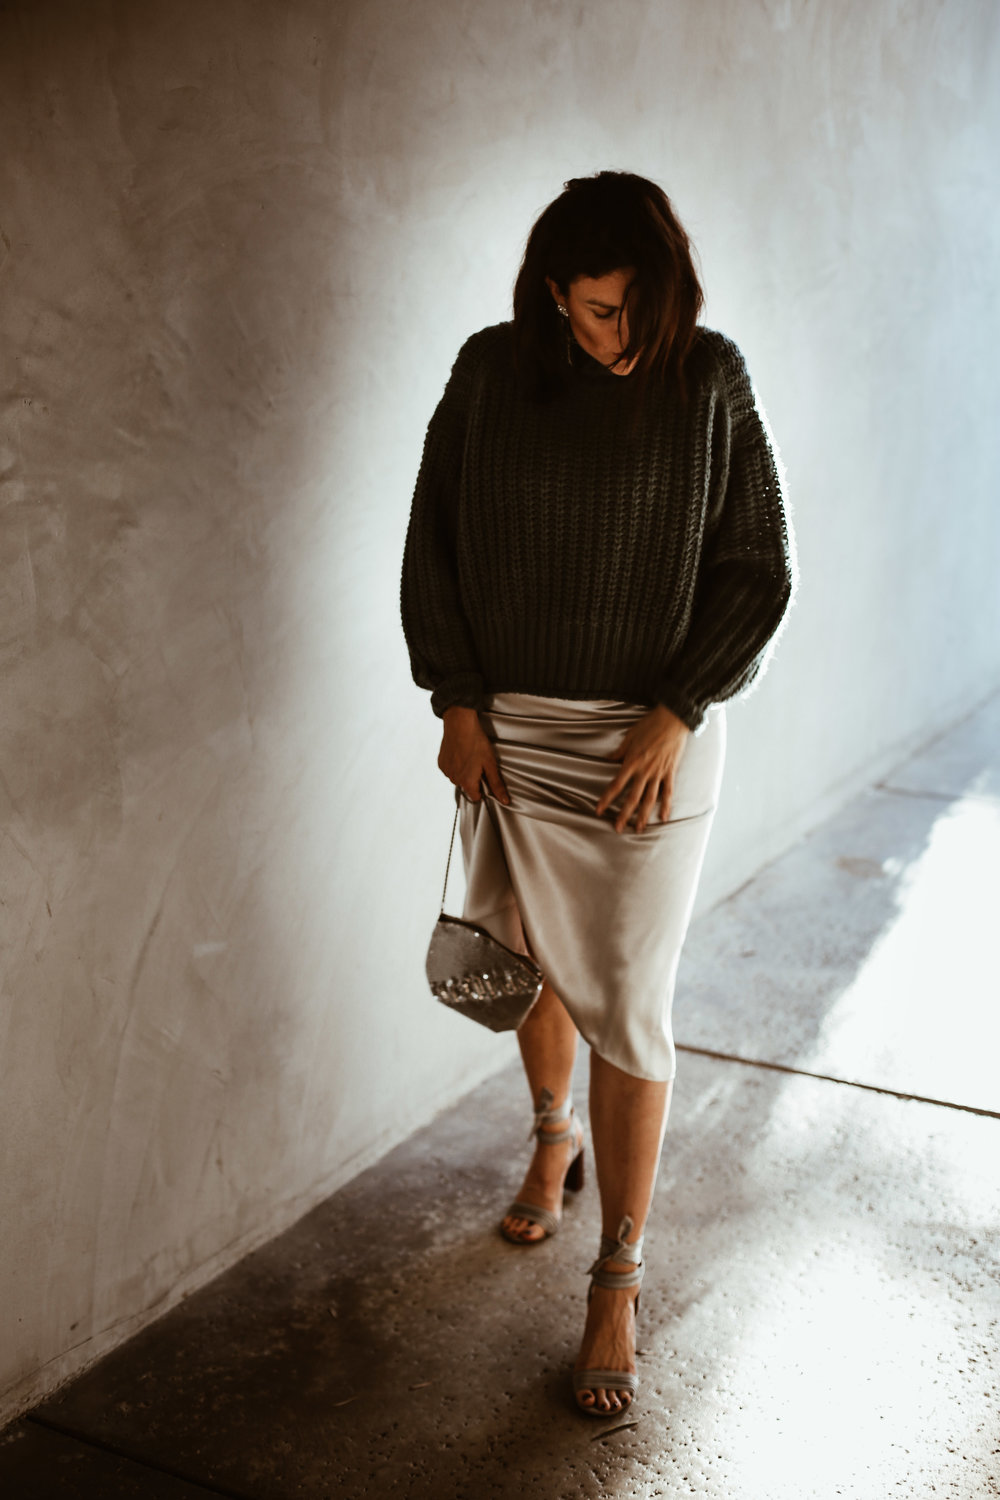 Sweater + Slip Dress Outfit for New Year's Eve25.jpg